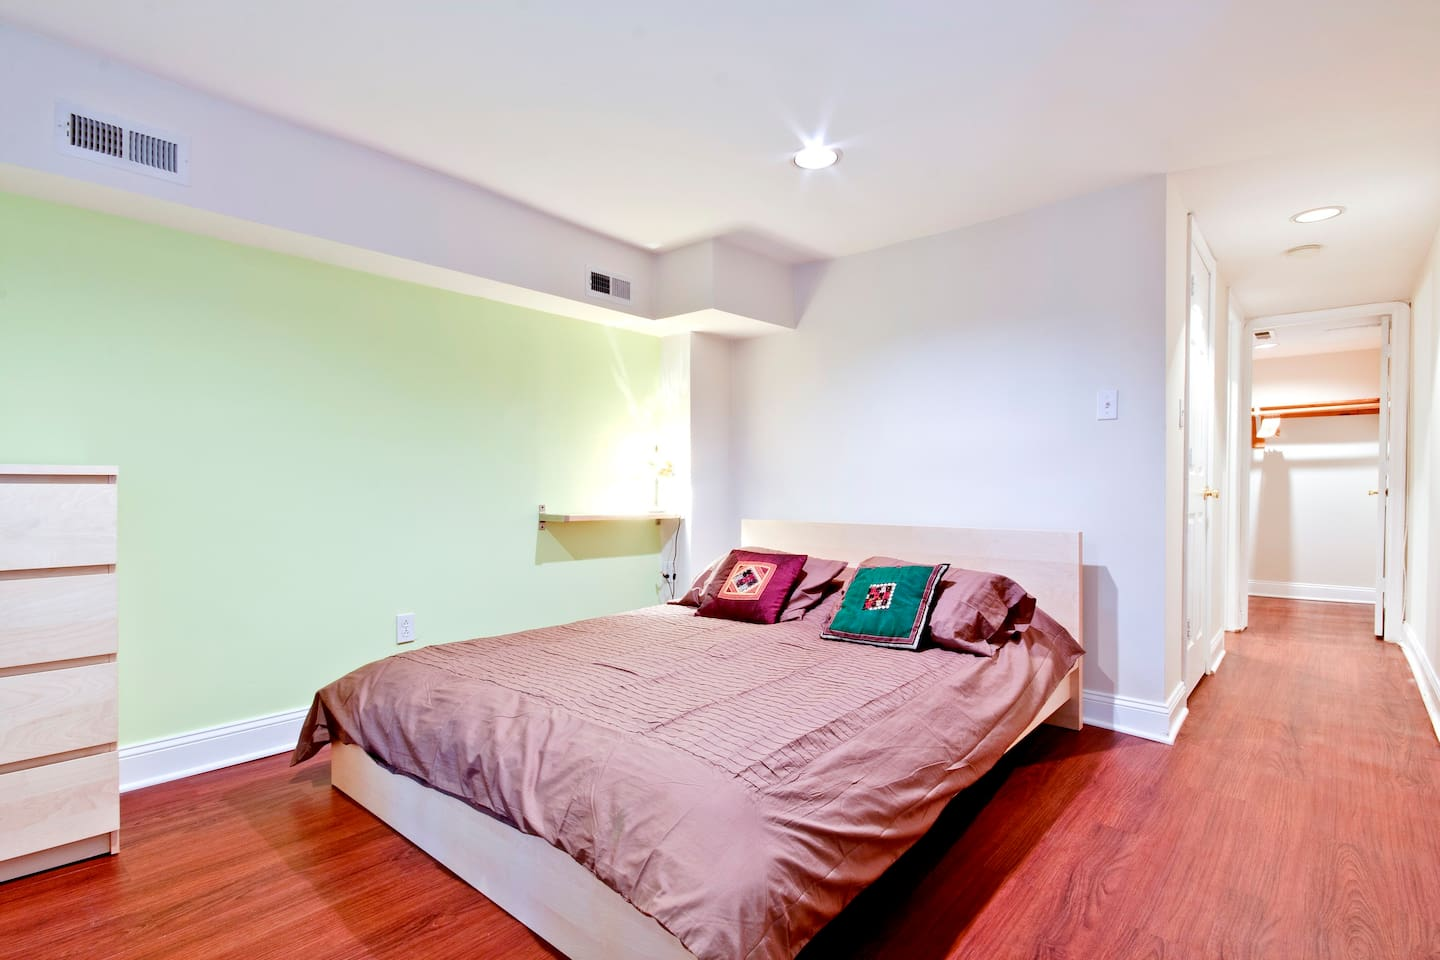 Bedroom with queen size bed, four drawer dresser and walk-in closet.  Includes linens, comforter, pillows.